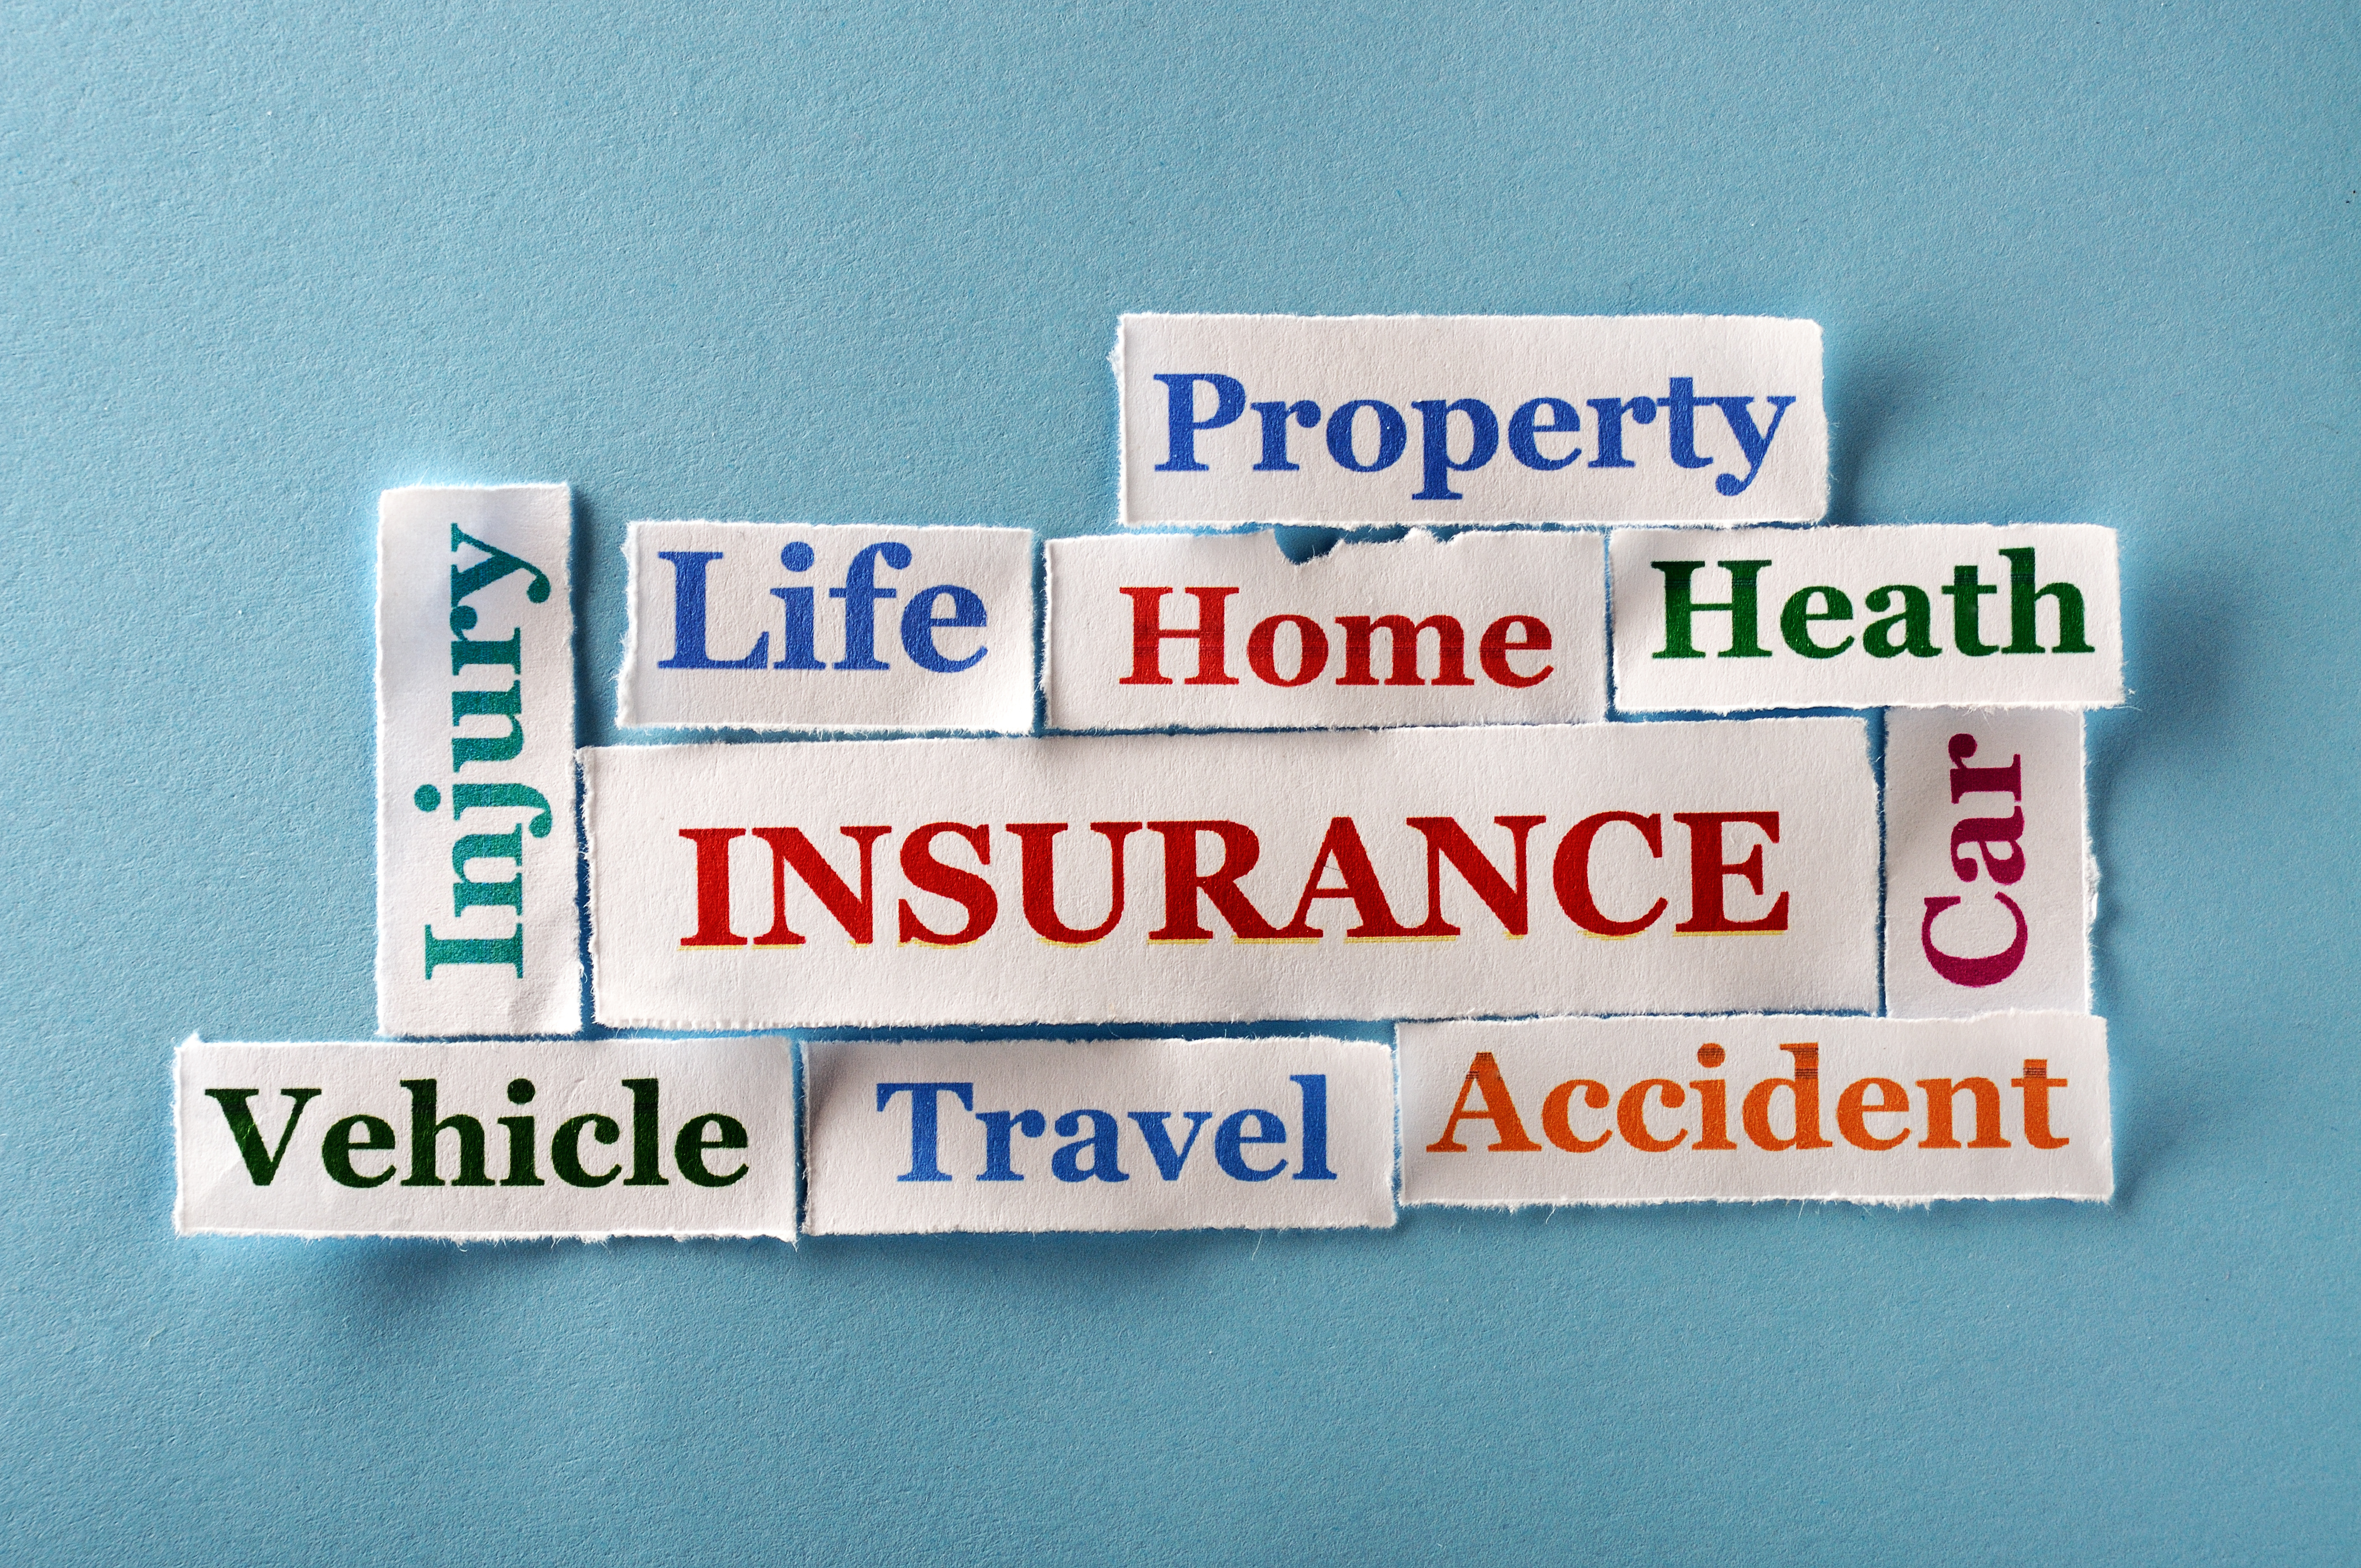 Tips For Those Wanting to Buy Insurance Online